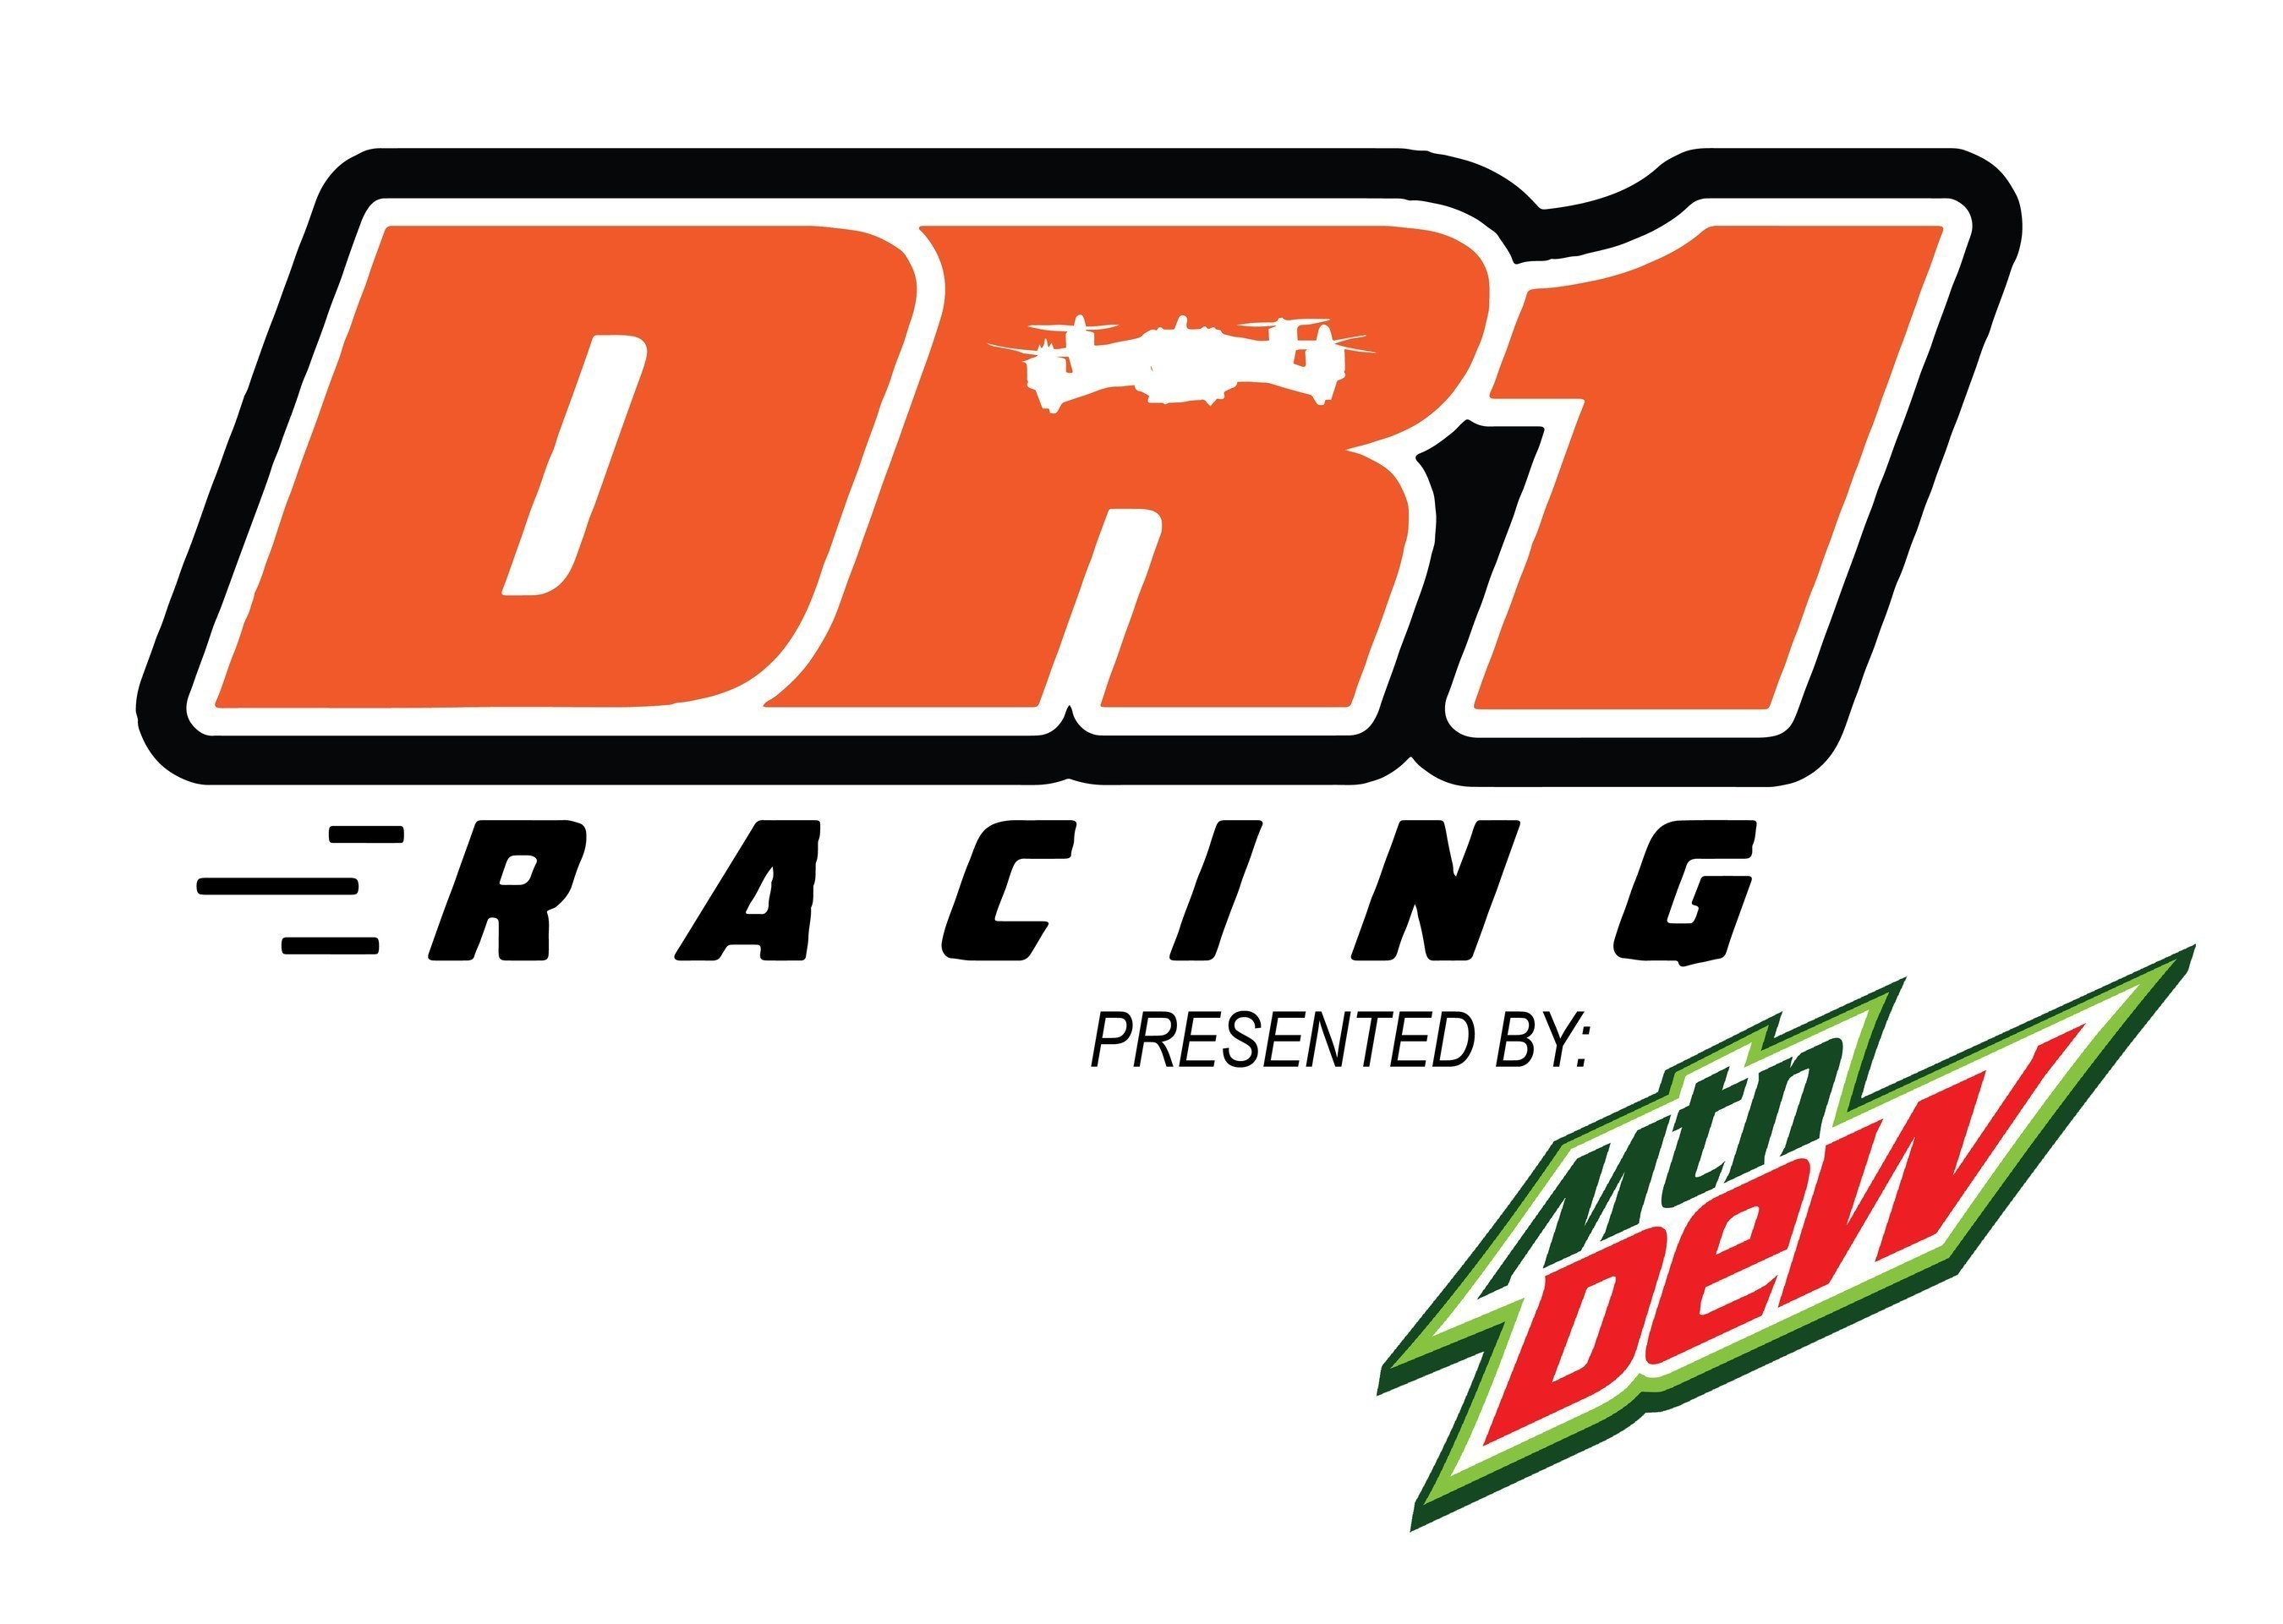 THE SPORT OF THE FUTURE TAKES OFF: MOUNTAIN DEW PARTNERS WITH DR1 RACING